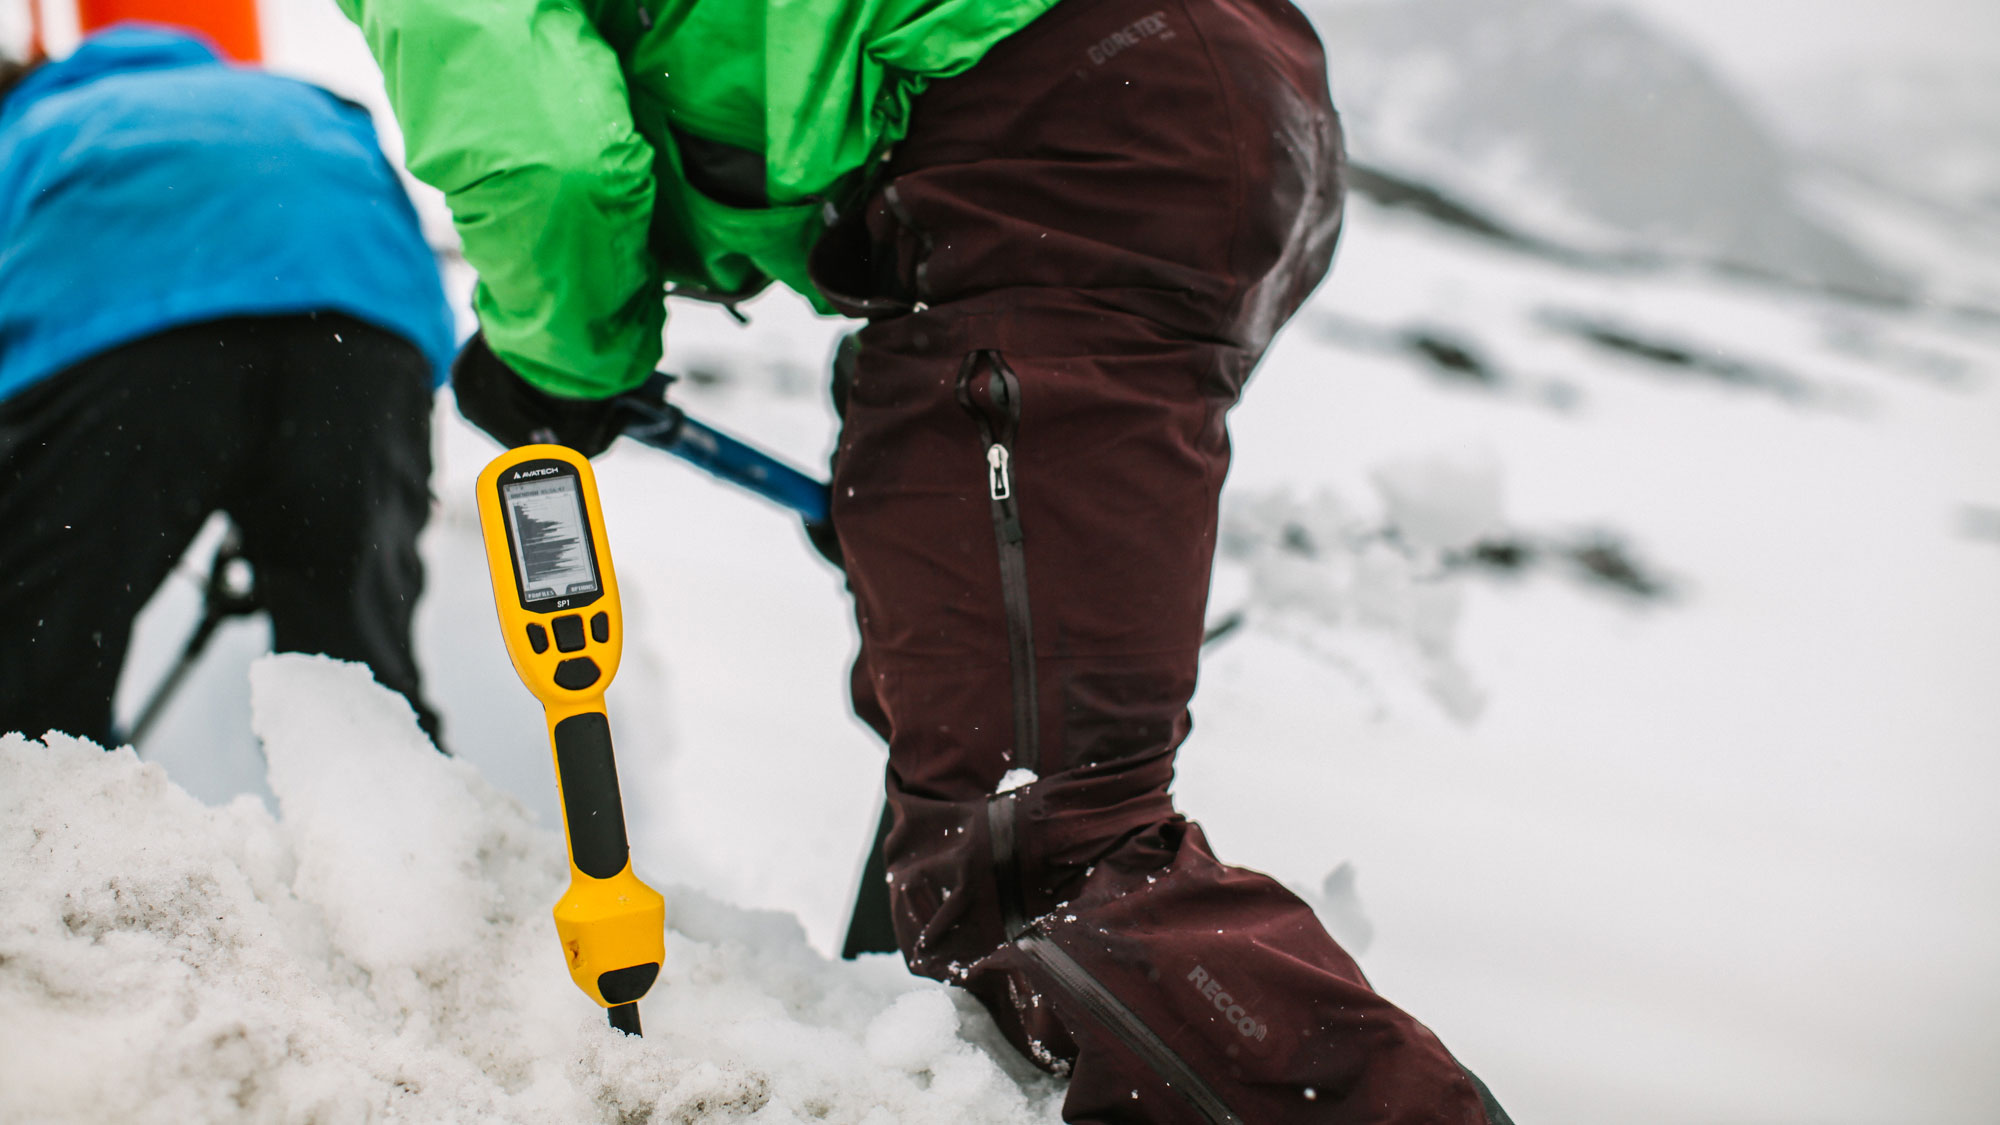 The AvaTech SP1 probe was sent out to avalanche centers and ski areas this winter for a beta test. Avy professionals say it's a valuable new tool to gather data quickly. But it cannot replace the protocols in place to determine snowpack stability. PHOTO: Courtesy of AvaTech